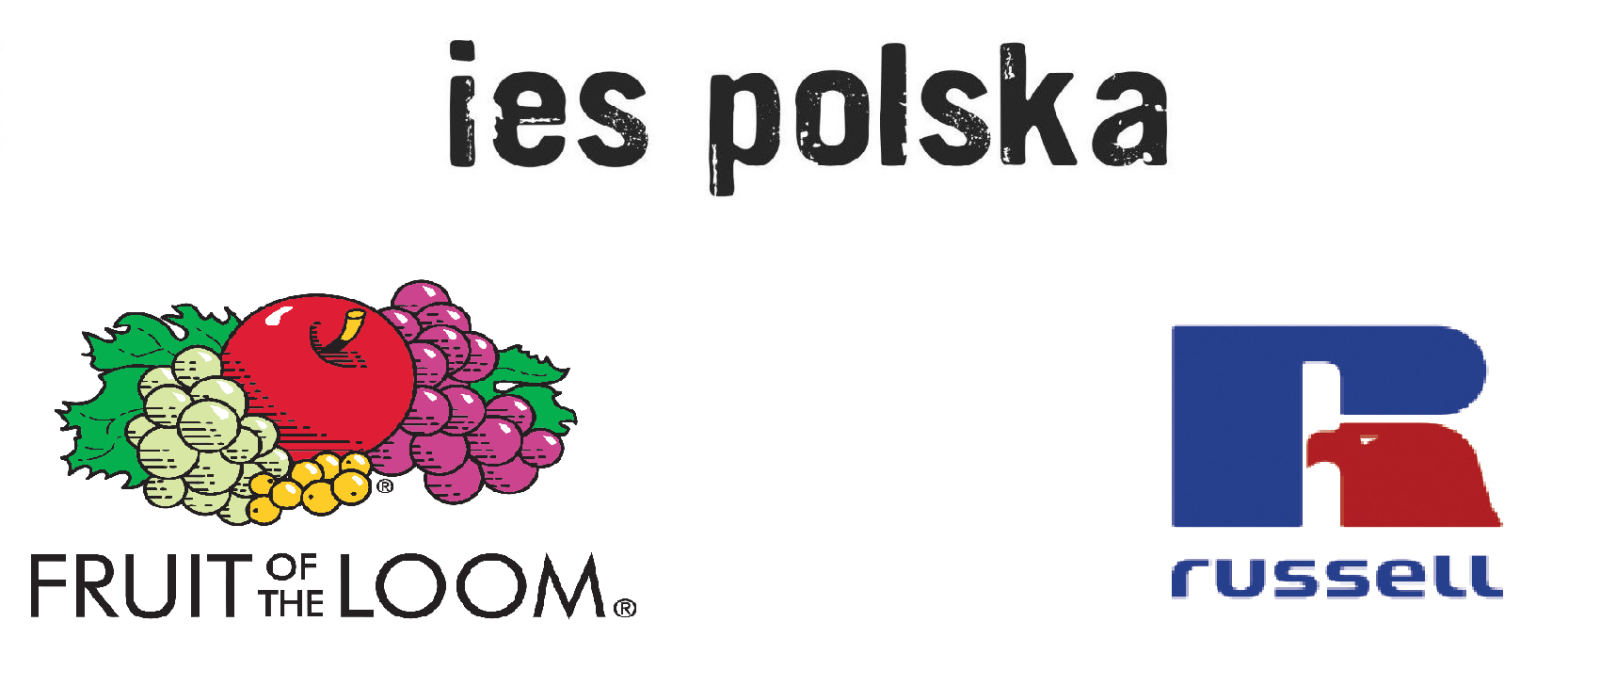 fruit of the loom, russell, ies polska